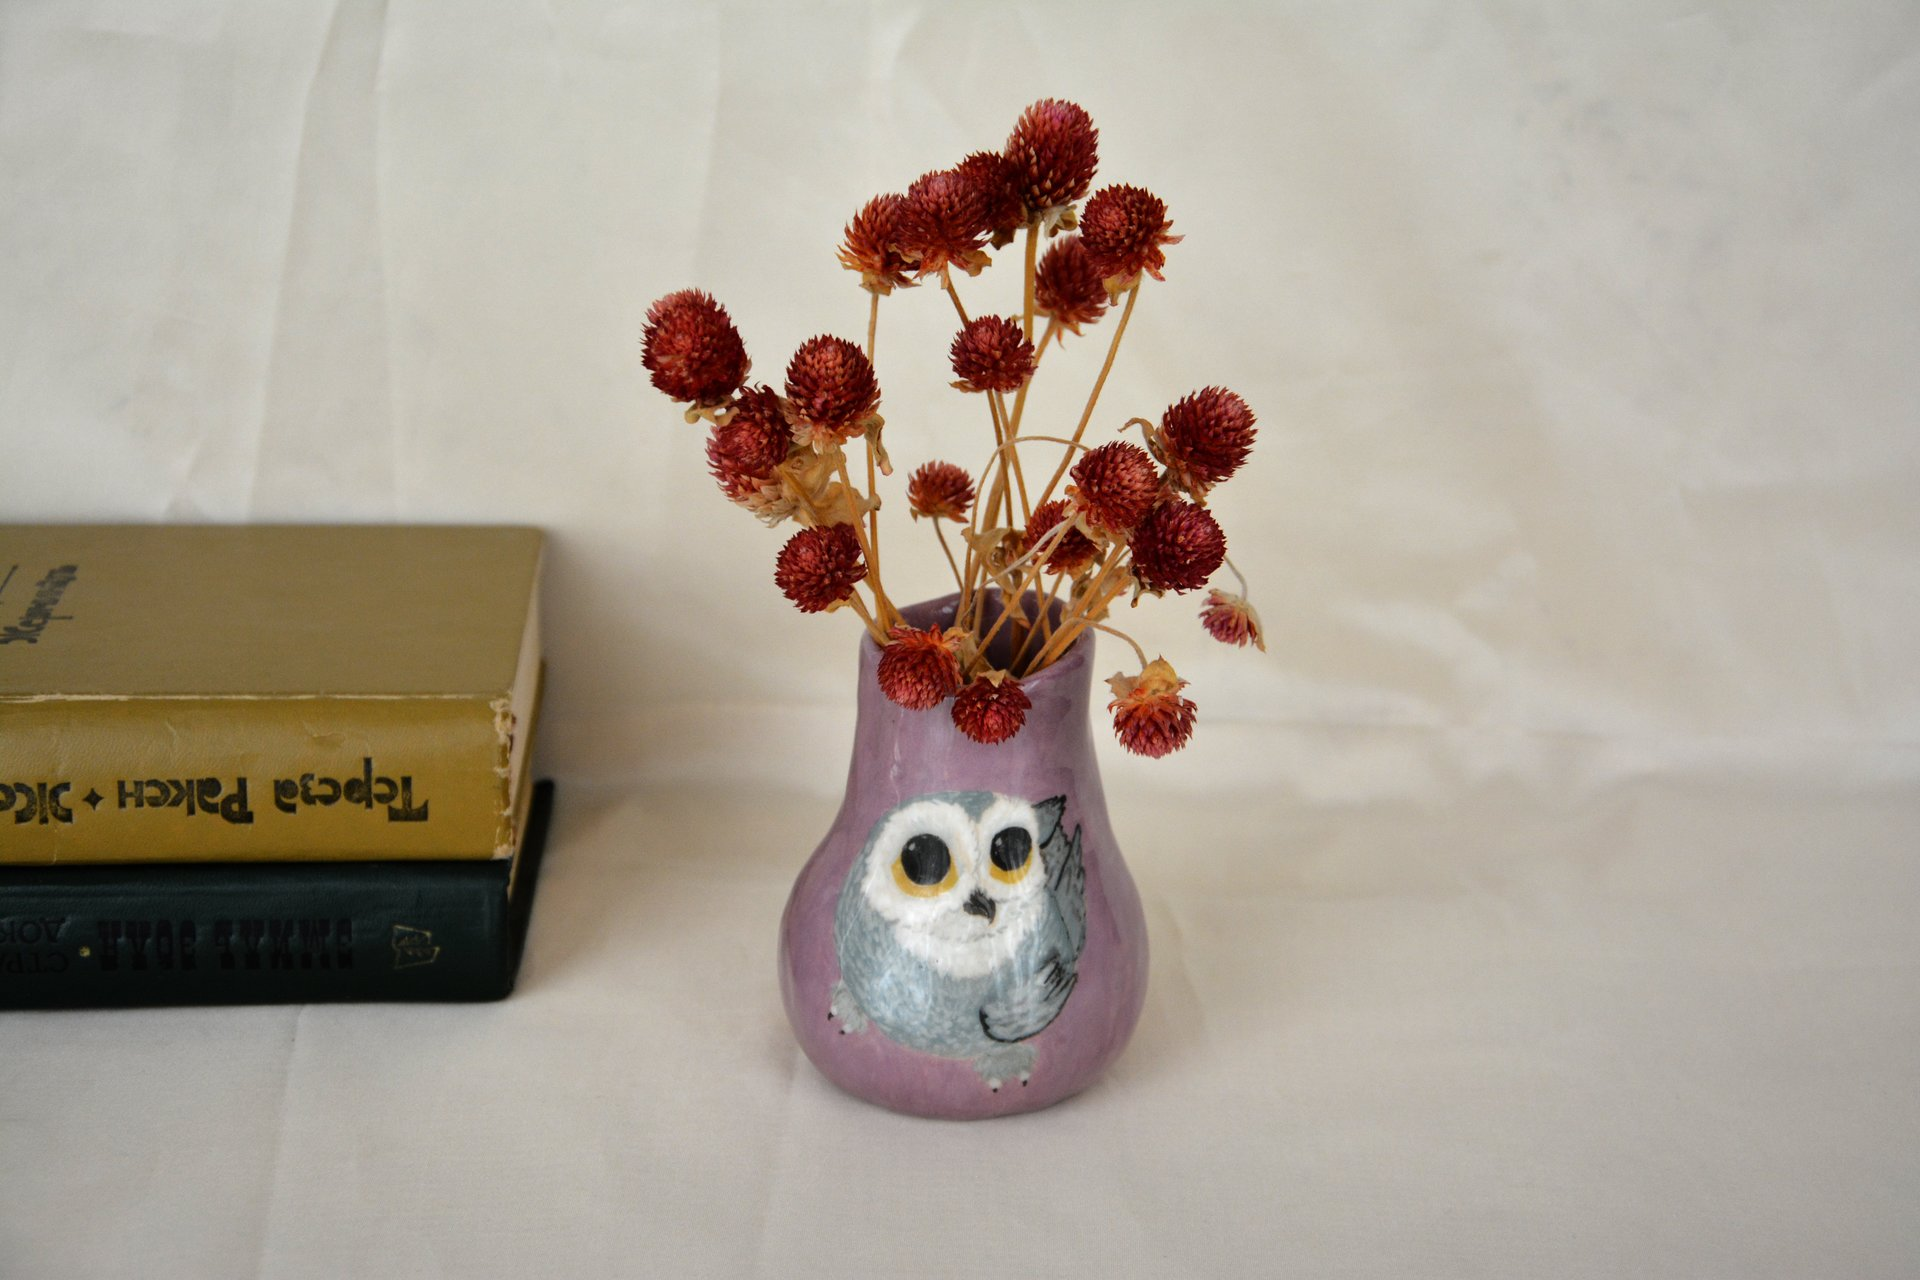 Hand painted vase (with a picture) «The Snowy owl», height - 10 cm. Photo 987.